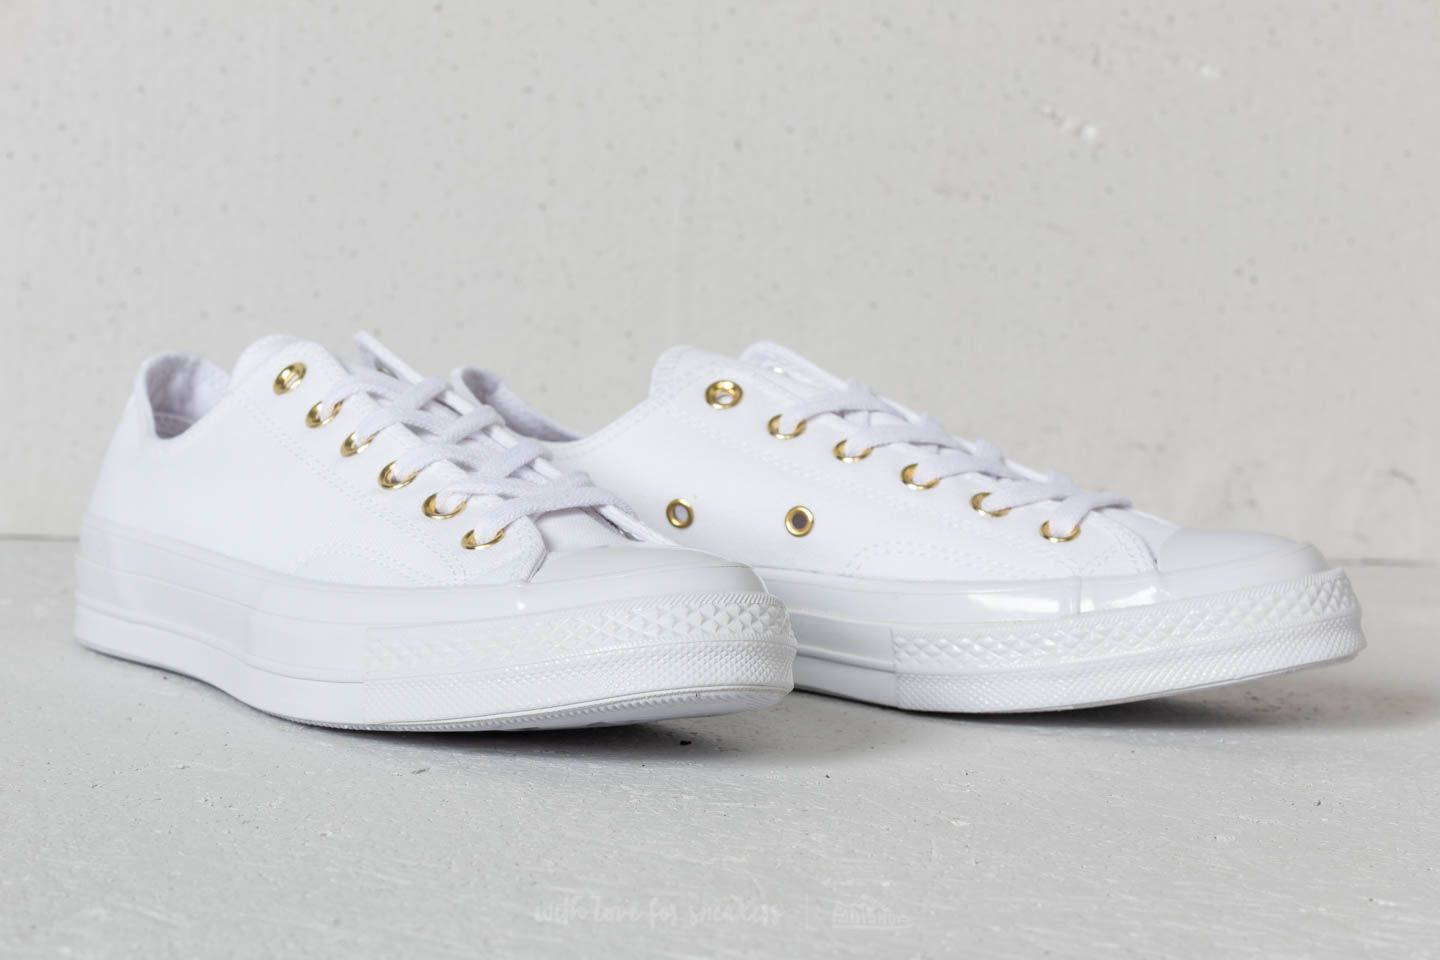 Converse Chuck Taylor All Star 70 Ox White  White  Cherry Blossom at a great 3963f2a2af52